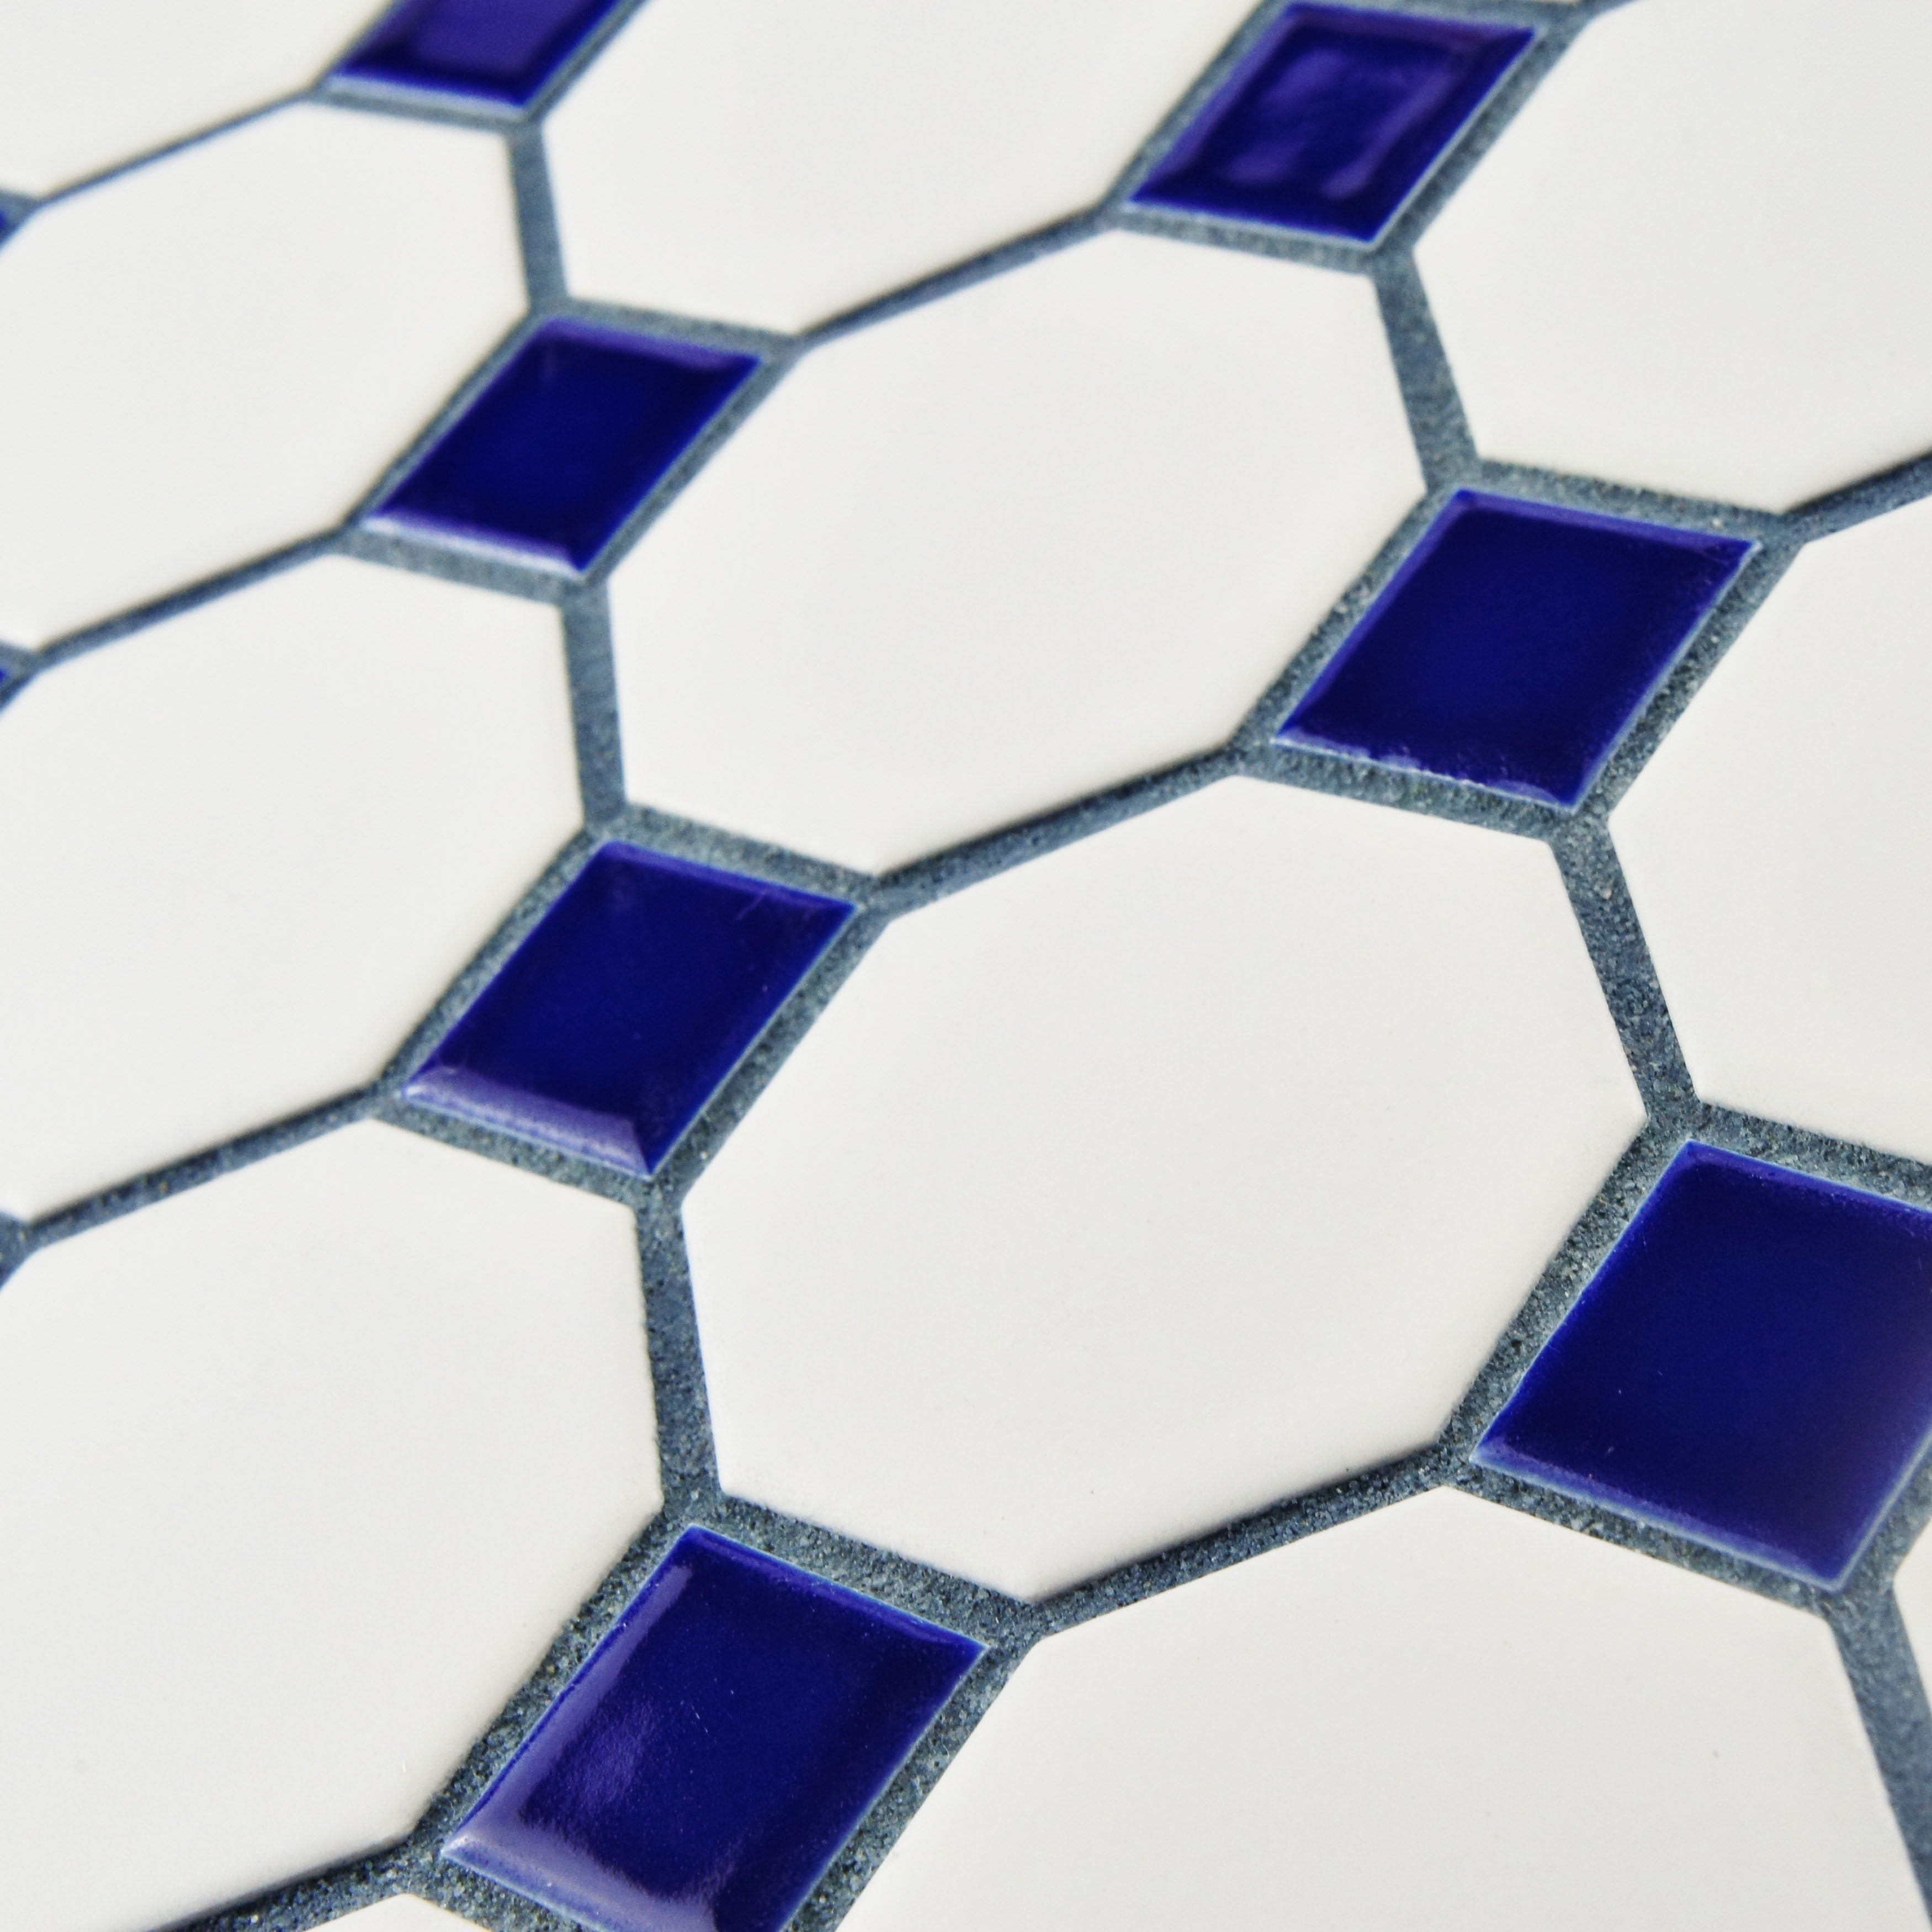 SomerTile 11 5x11 5 inch Victorian Octagon White and Cobalt